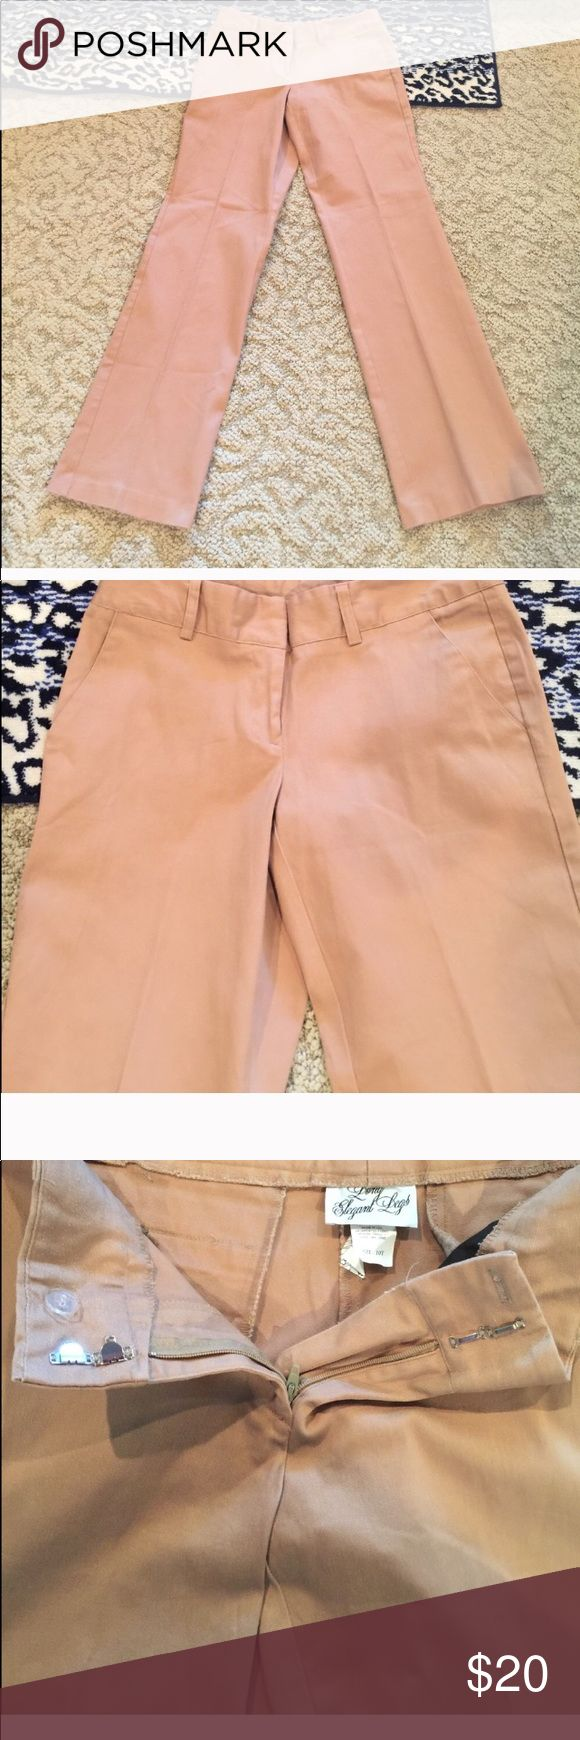 New lel dark tan pants w/ spandex tall 10 comfy New long elegant legs dark tan pants cotton 4% spandex tall 10 inseam is 34 inches waistband is wider with belt loops front and back pockets made in USA Long Elegant Legs Pants Straight Leg